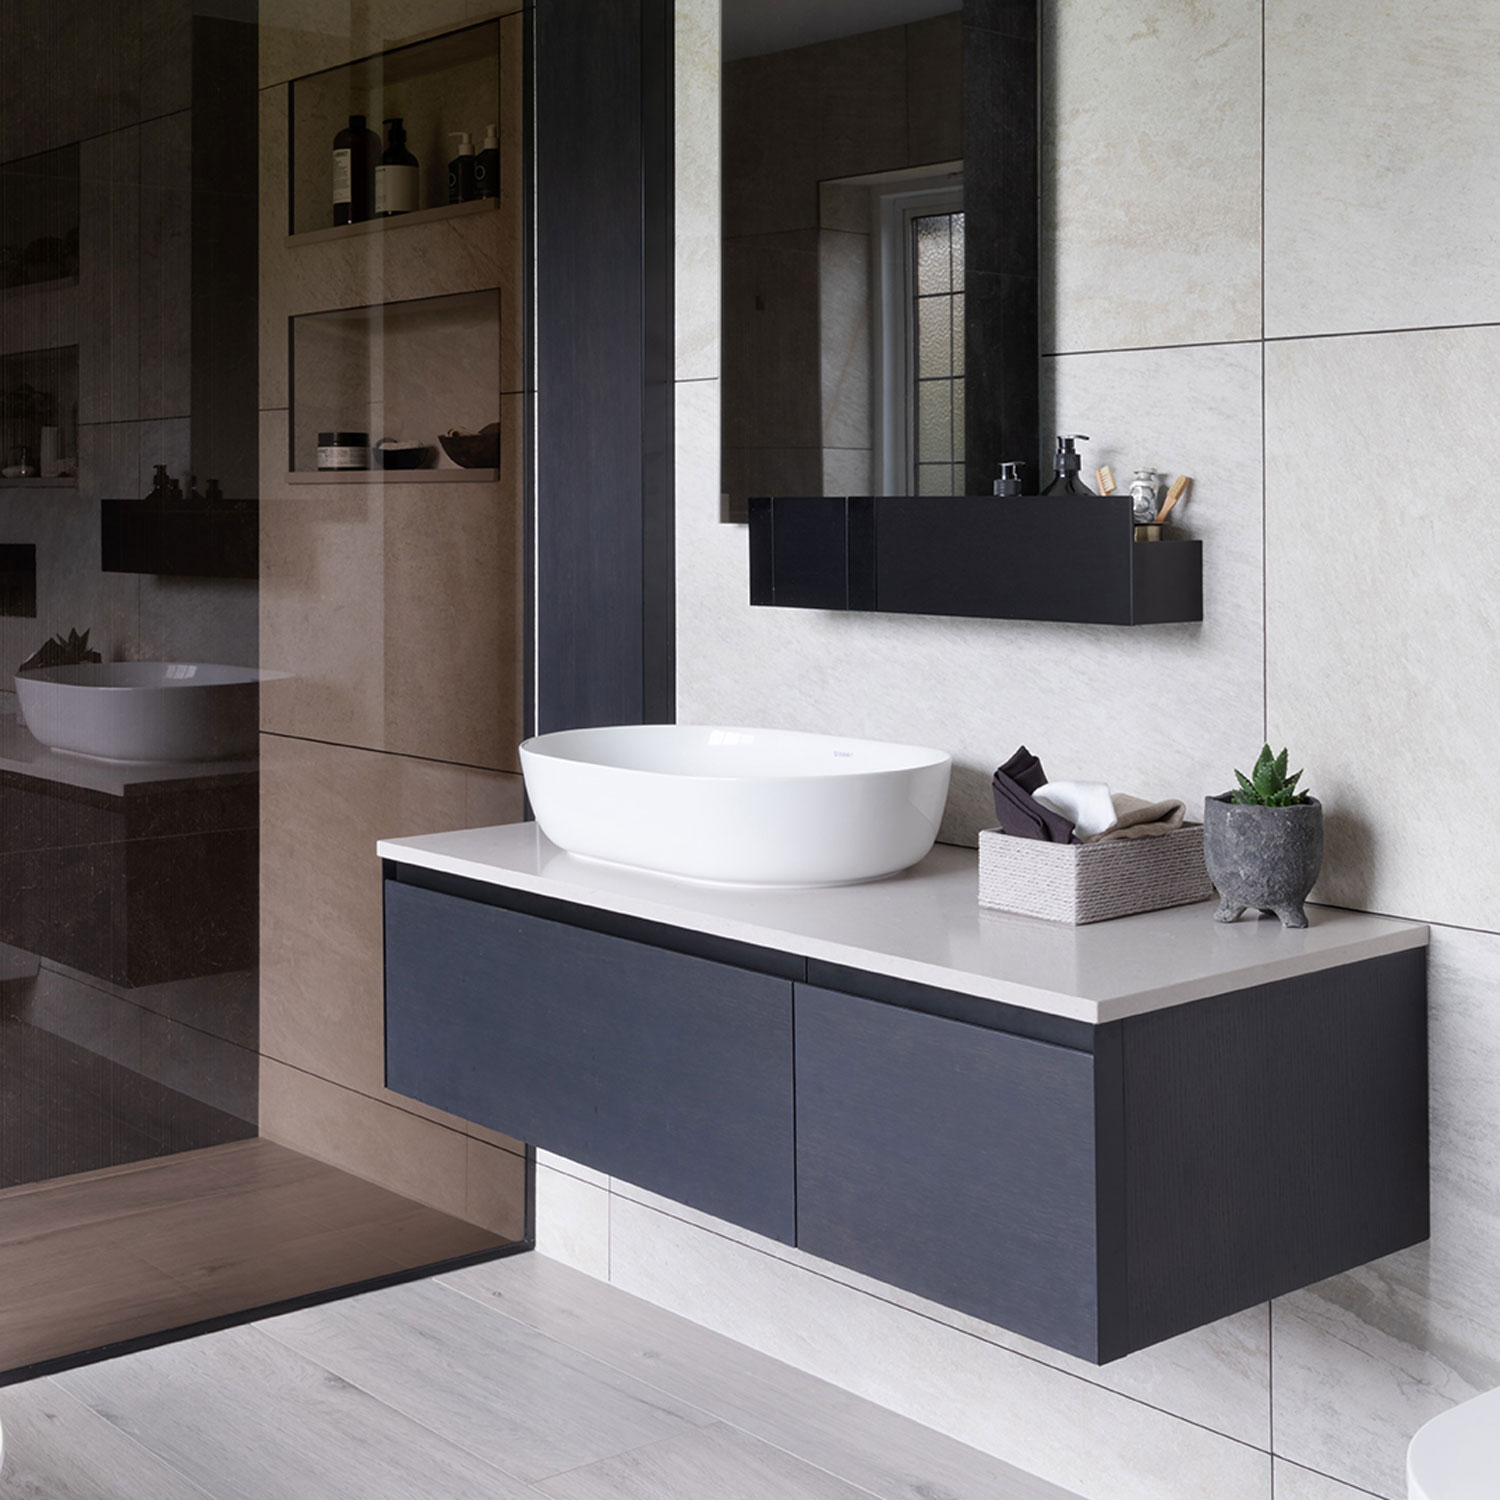 West One Bathrooms Manor Way 3 Square